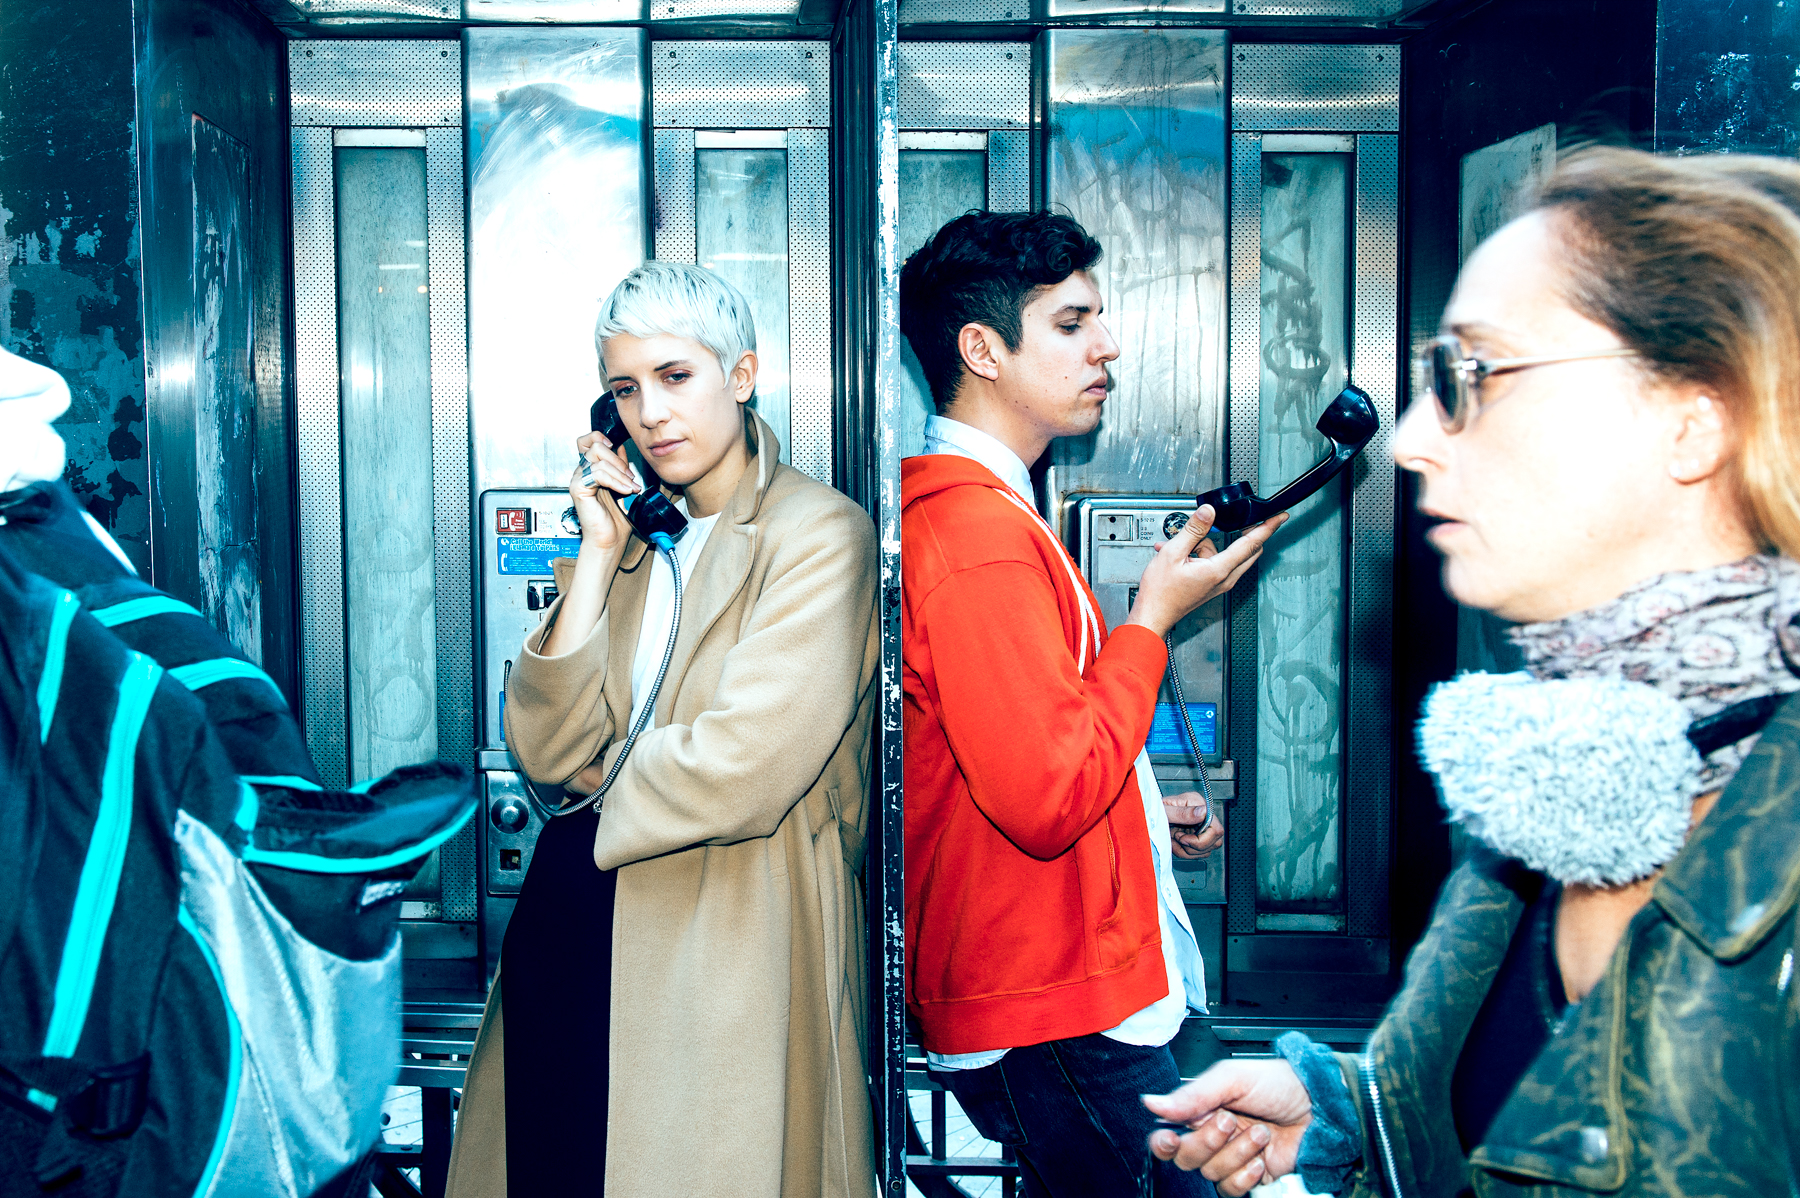 Yacht's Claire Evans and Jona Bechtolt photographed by Chad Kamenshine